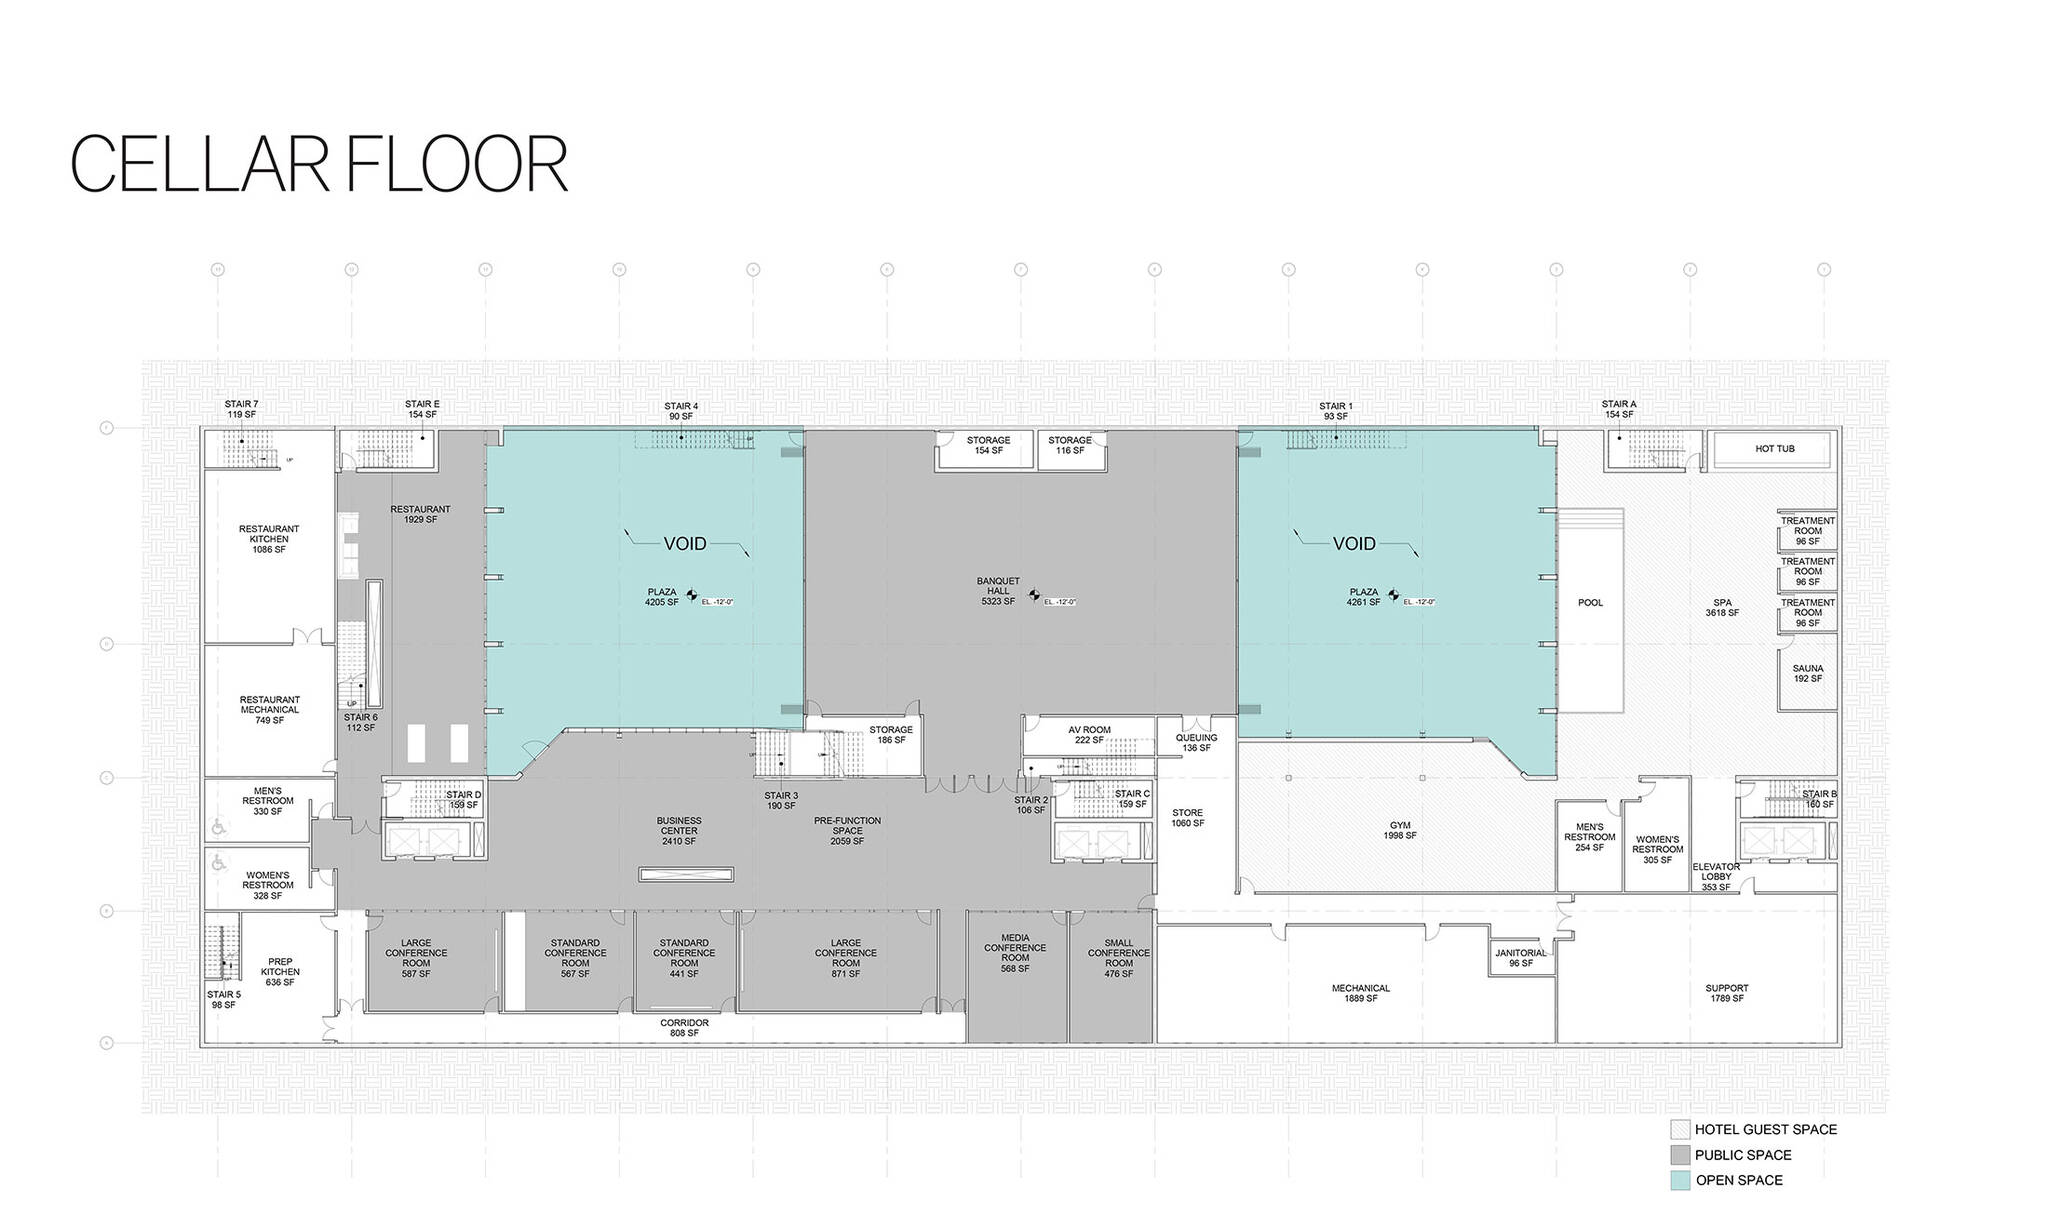 Cellar floor plan of the Jericho Plaza Hotel project in Jericho, New York designed by the architecture studio Danny Forster & Architecture